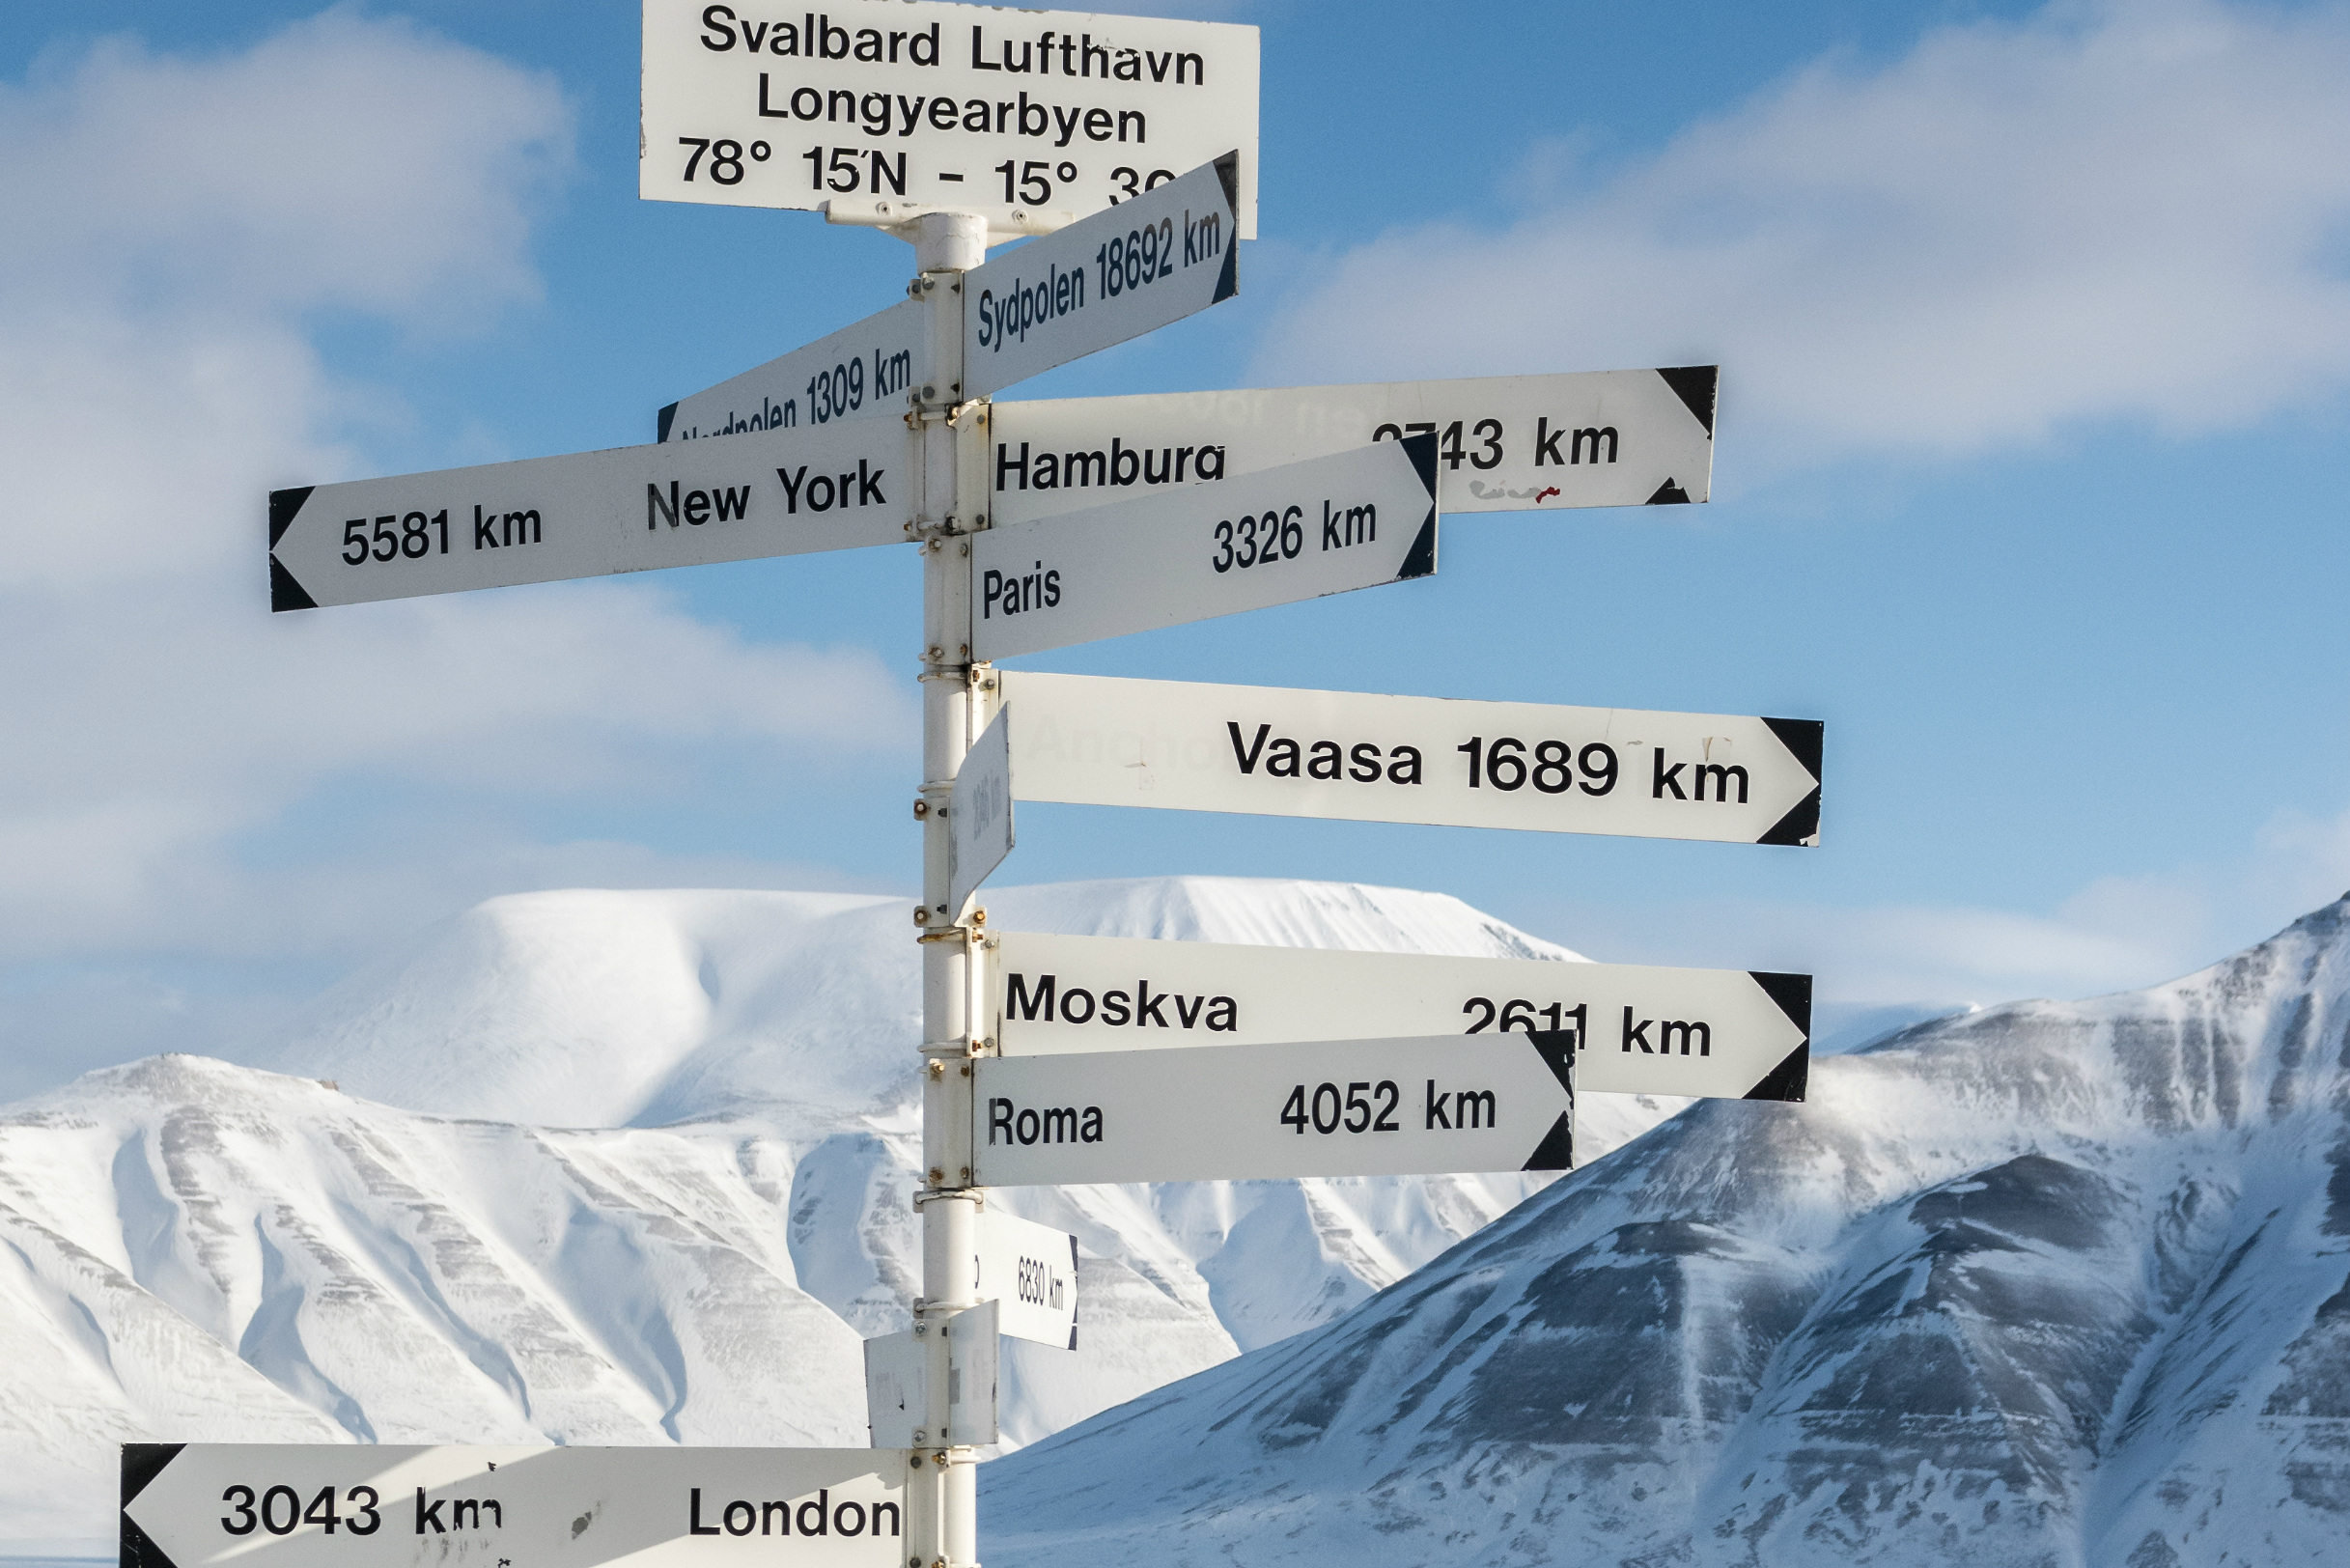 A meeting of NATO nation lawmakers in Svalbard raises Russian objections